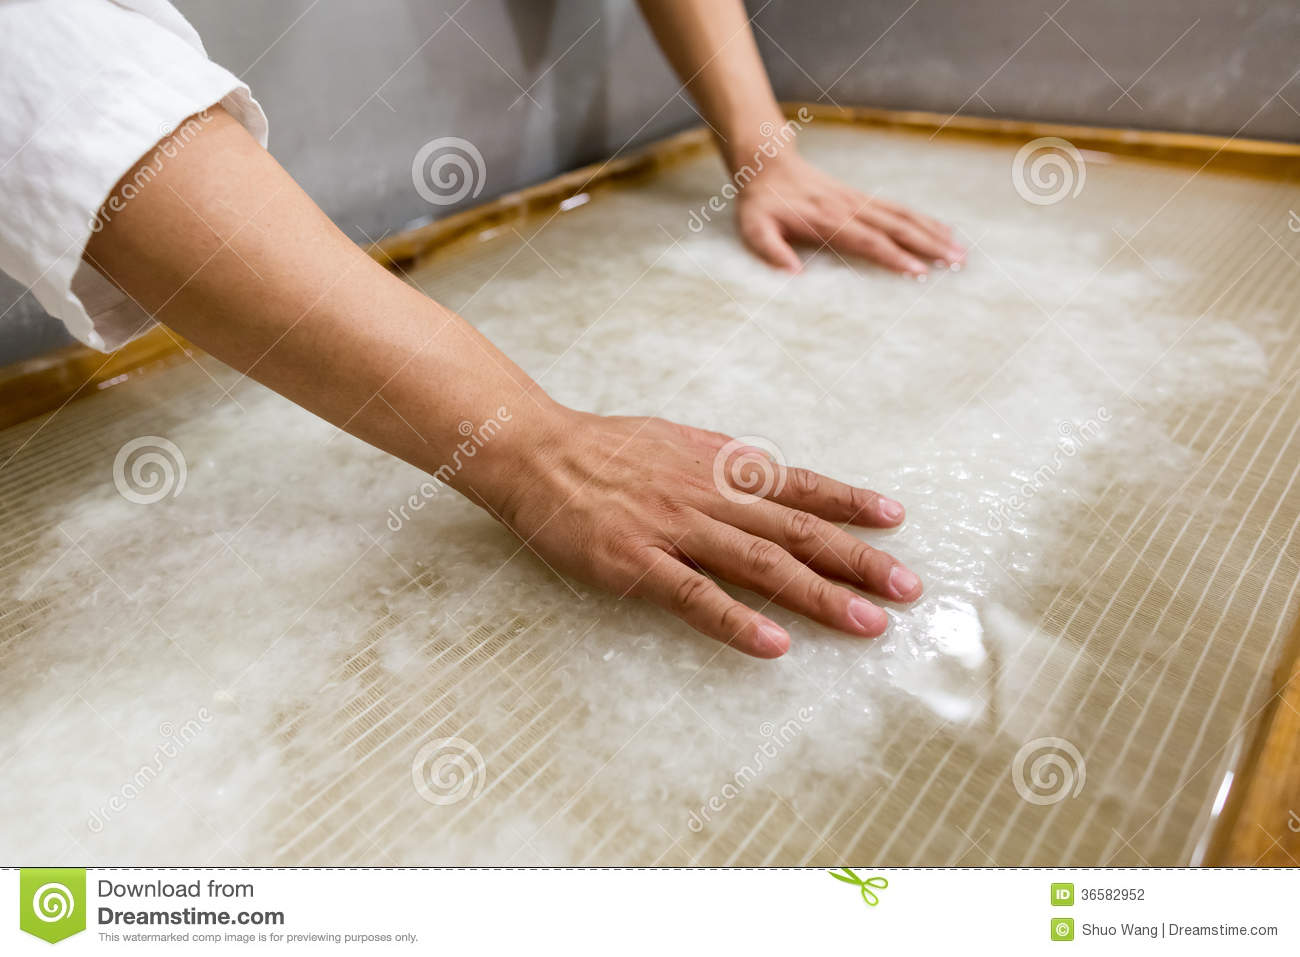 The Traditional Papermaking Stock Image - Image of factory ... |Old Papermaking Technology